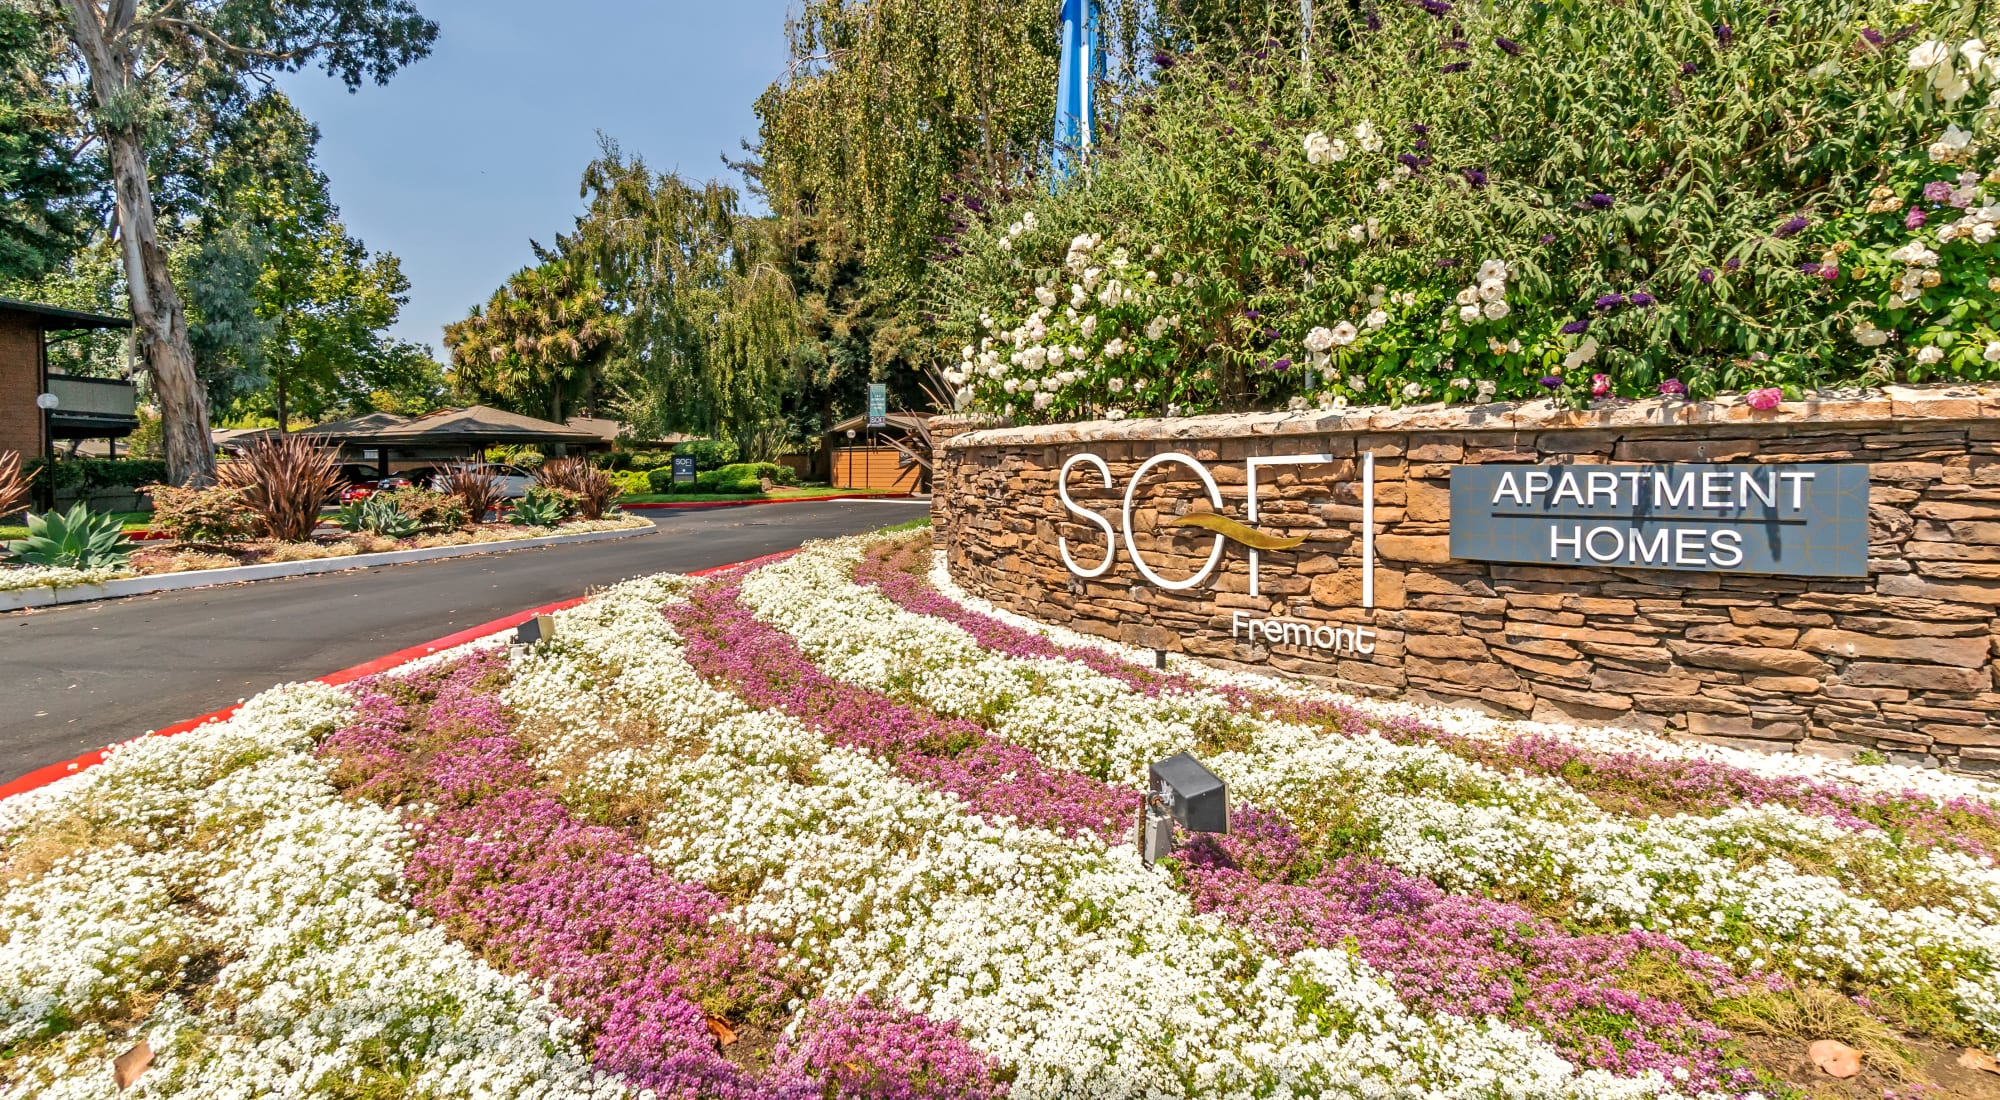 Neighborhood at Sofi Fremont in Fremont, California